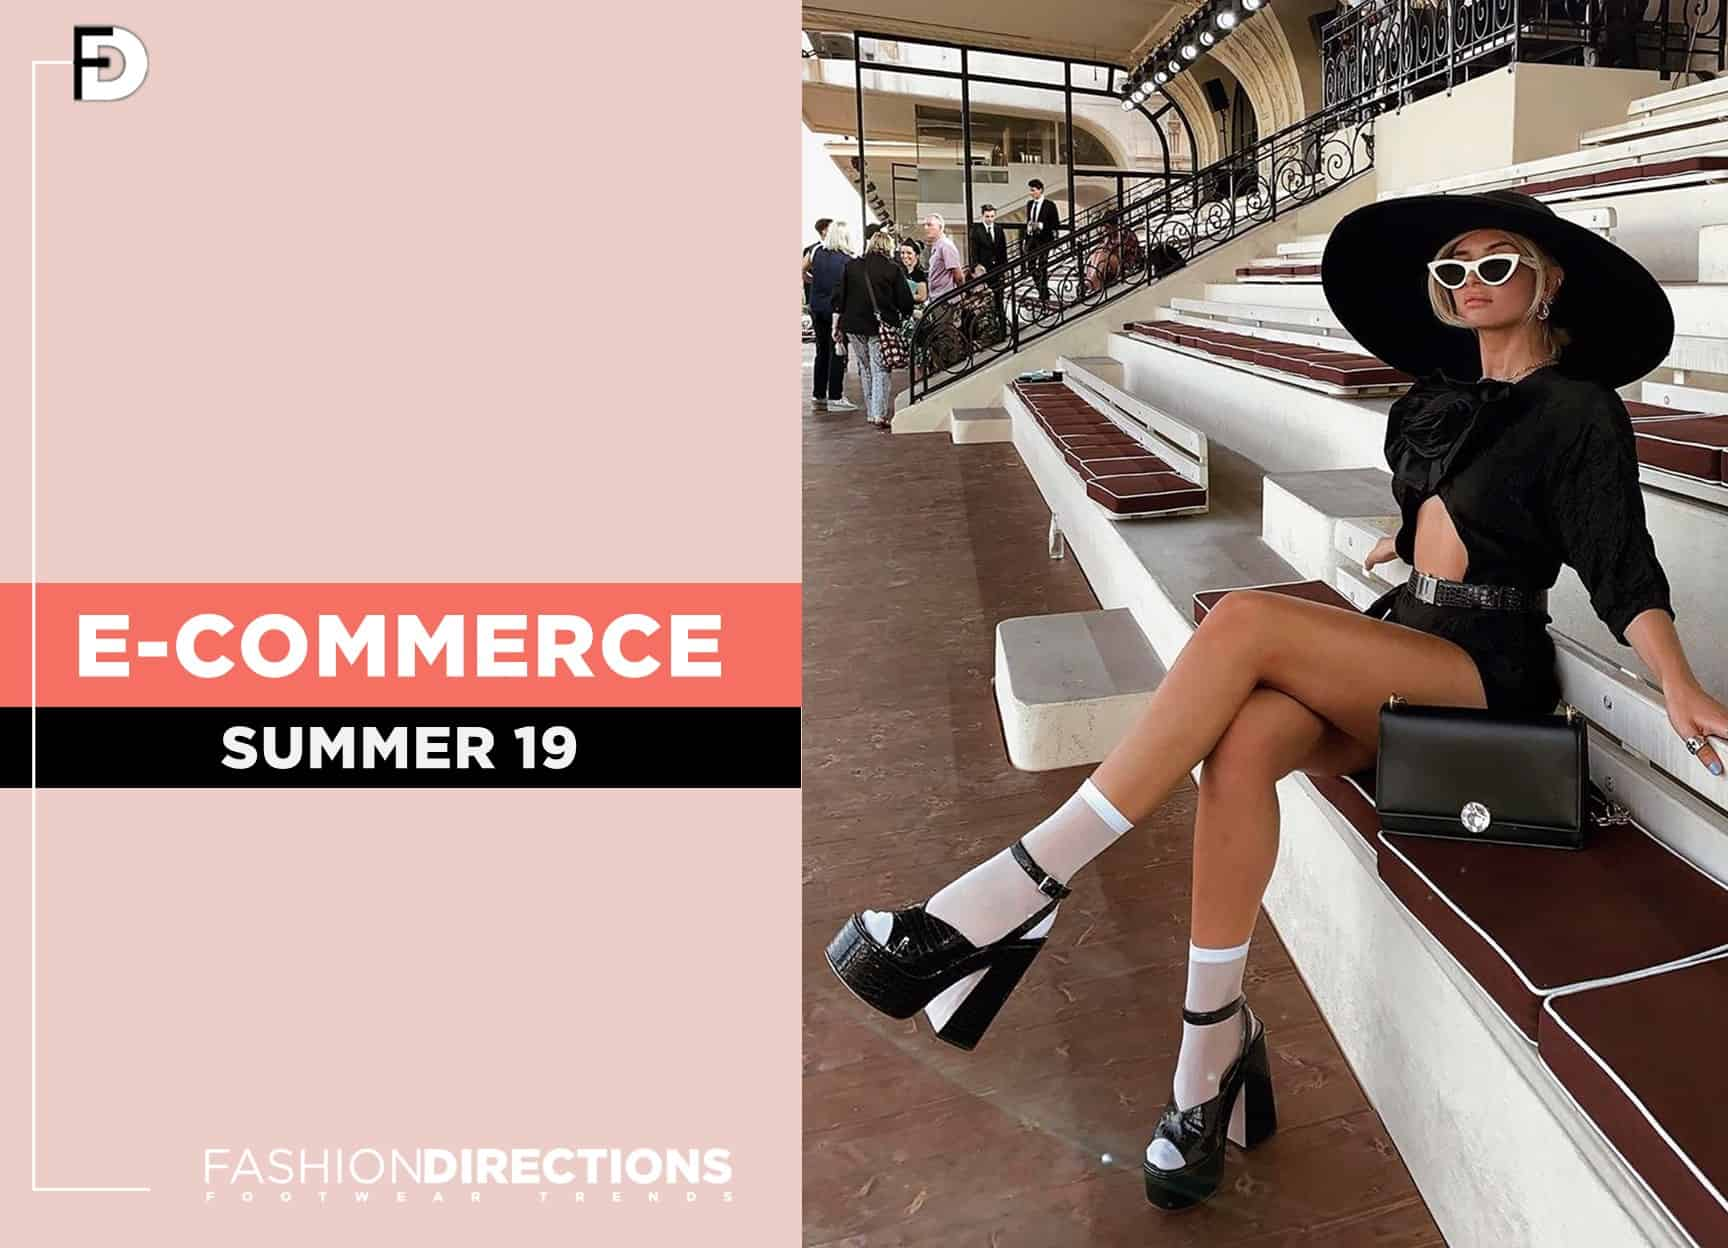 footwear trends in online stores summer 2019 1